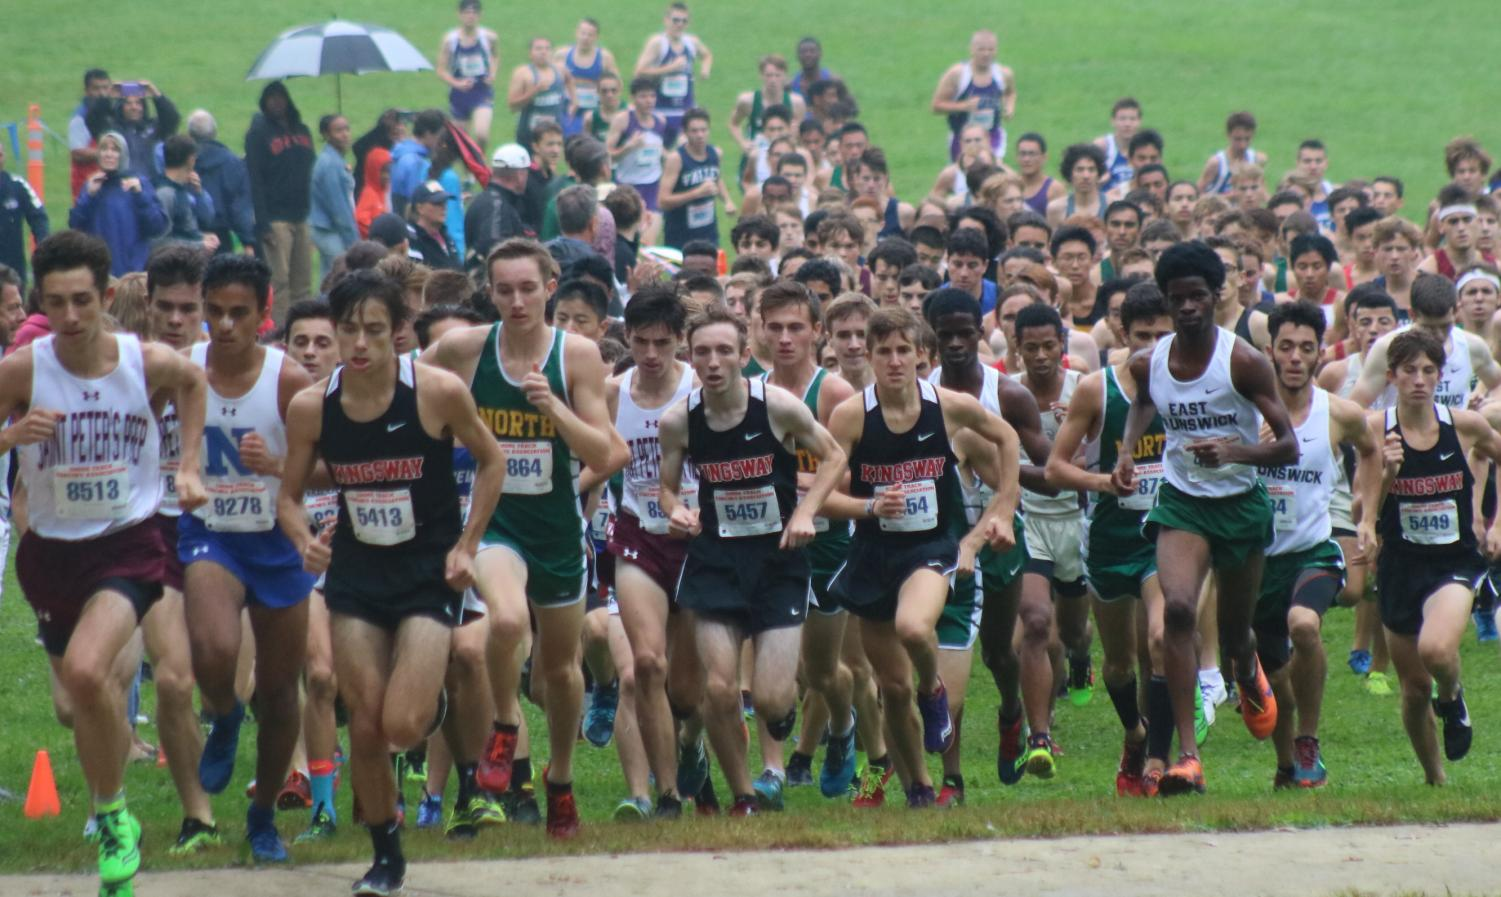 The Kingsway boys run as a pack almost every race. In this race Stone Carracio leads his team to a first place at Shore Coaches.